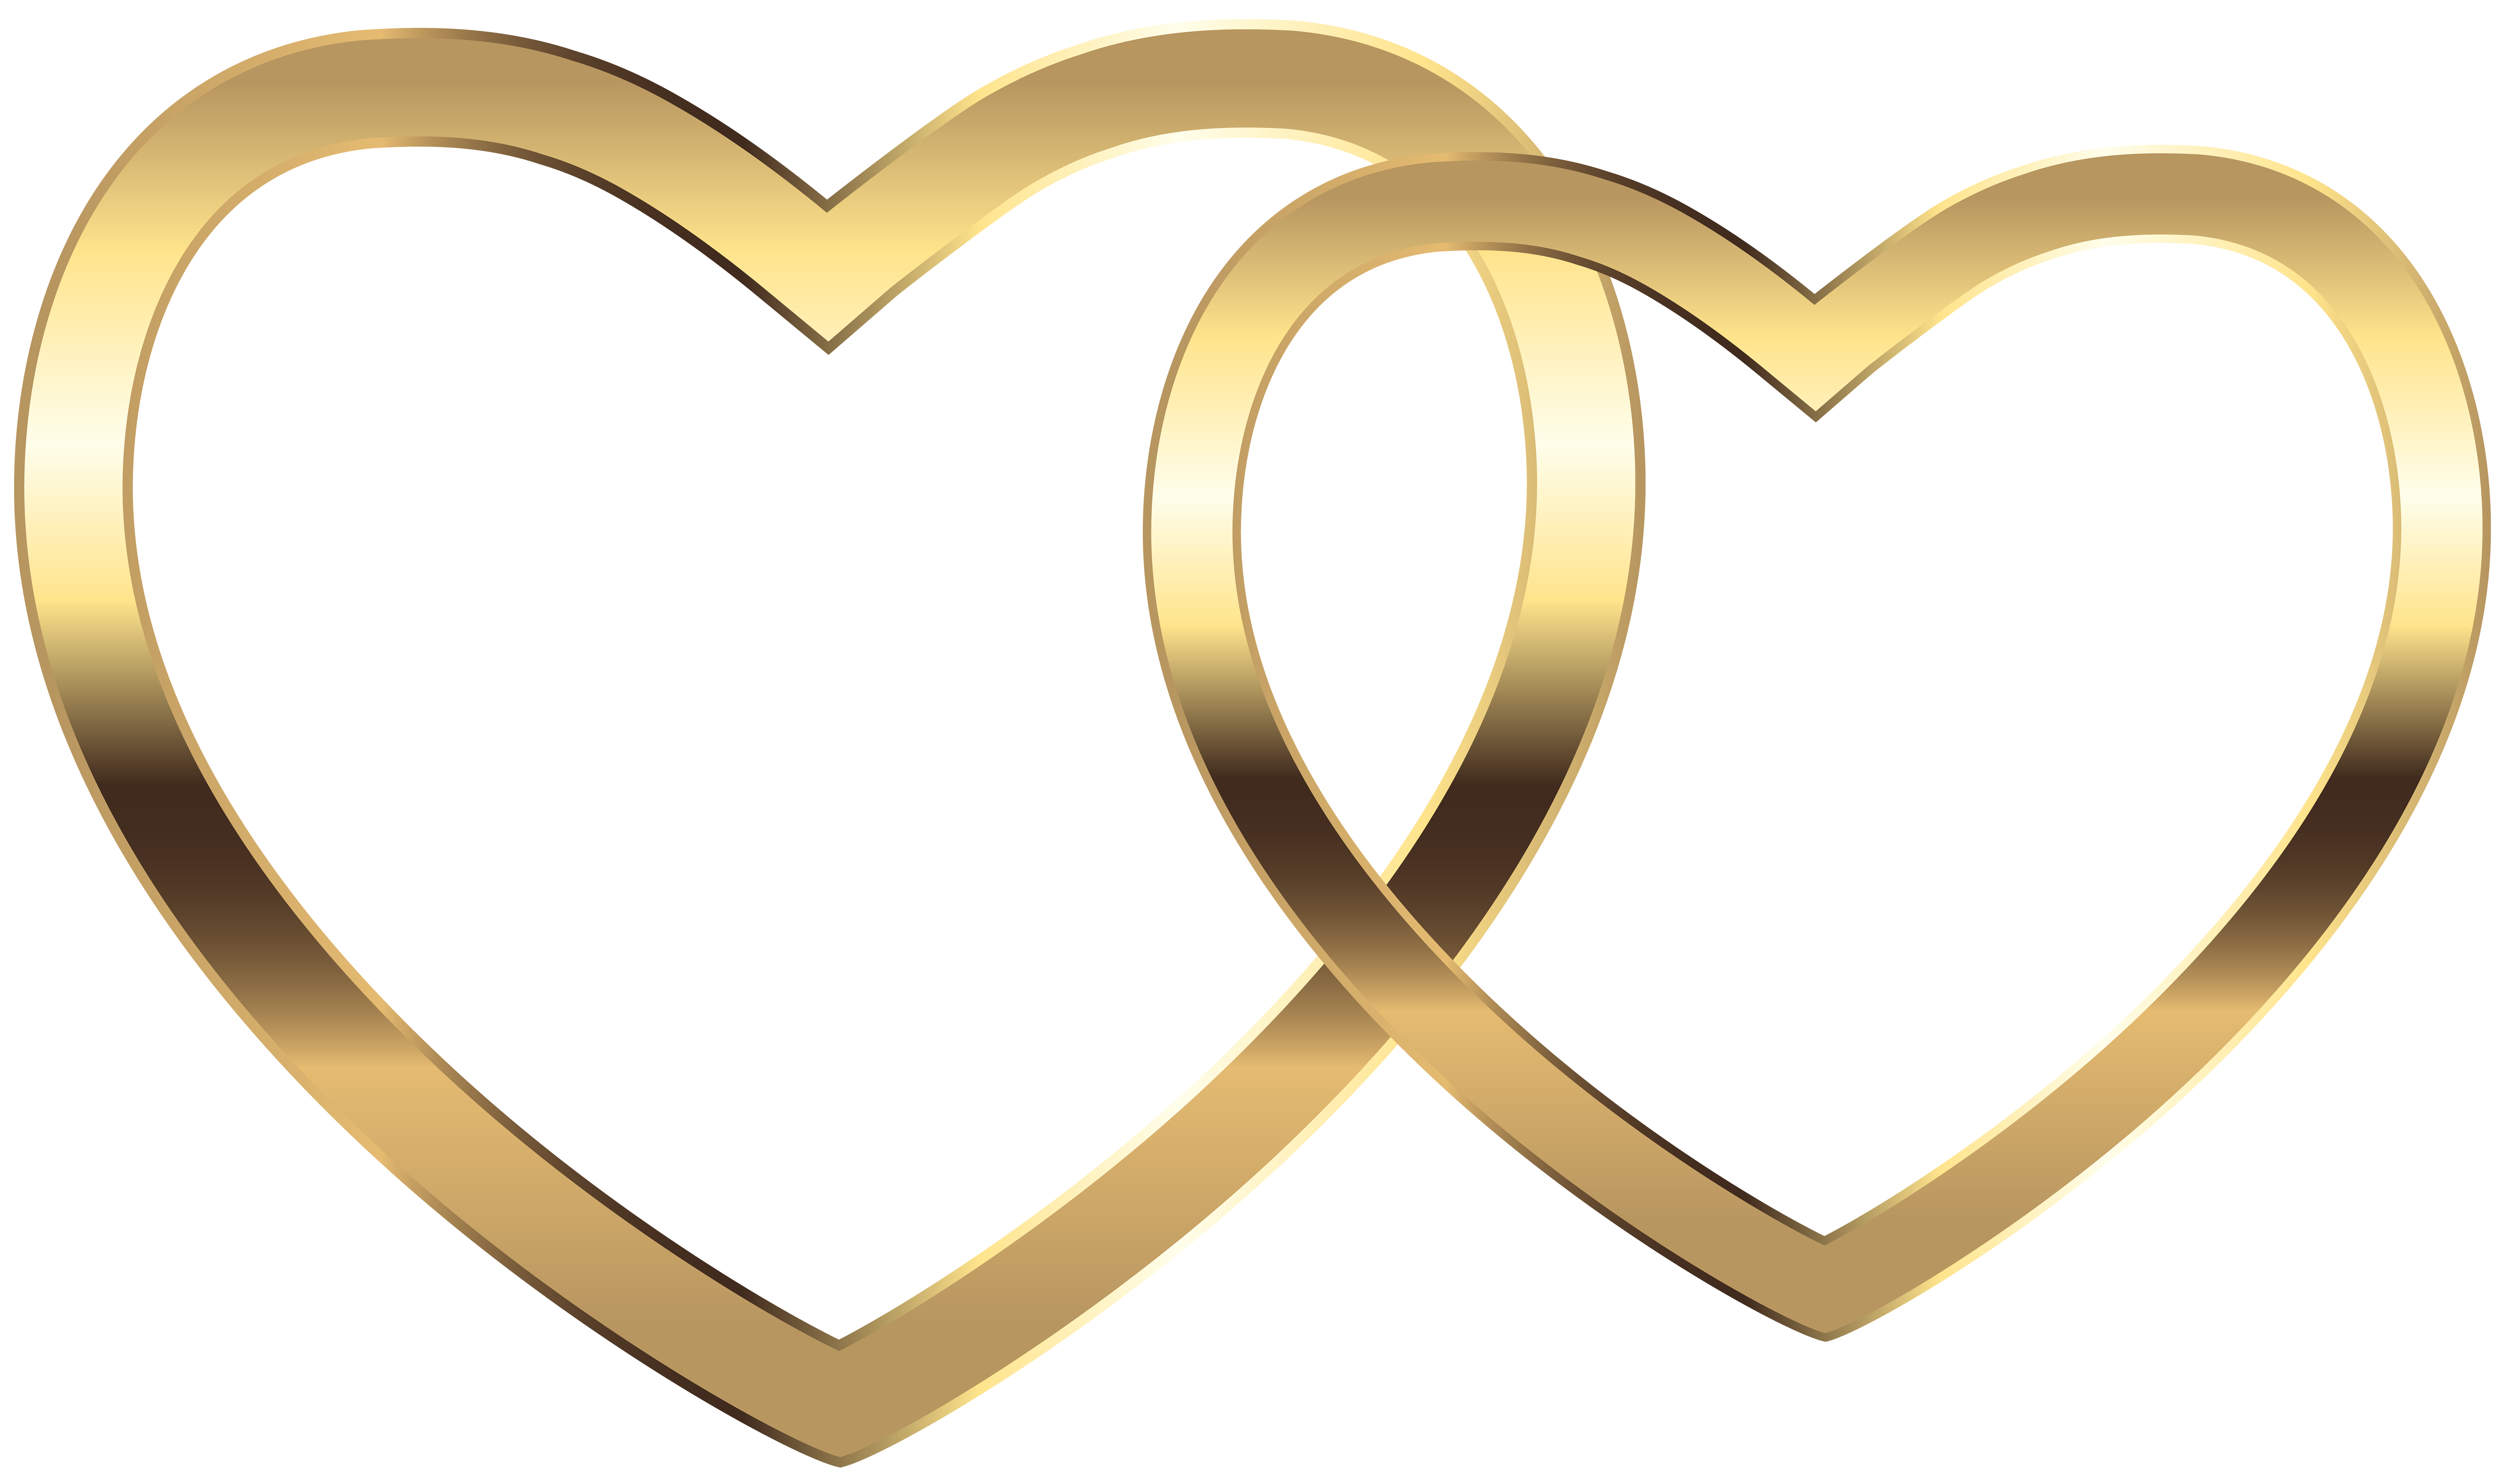 Gold heart png. Transparent two hearts clip